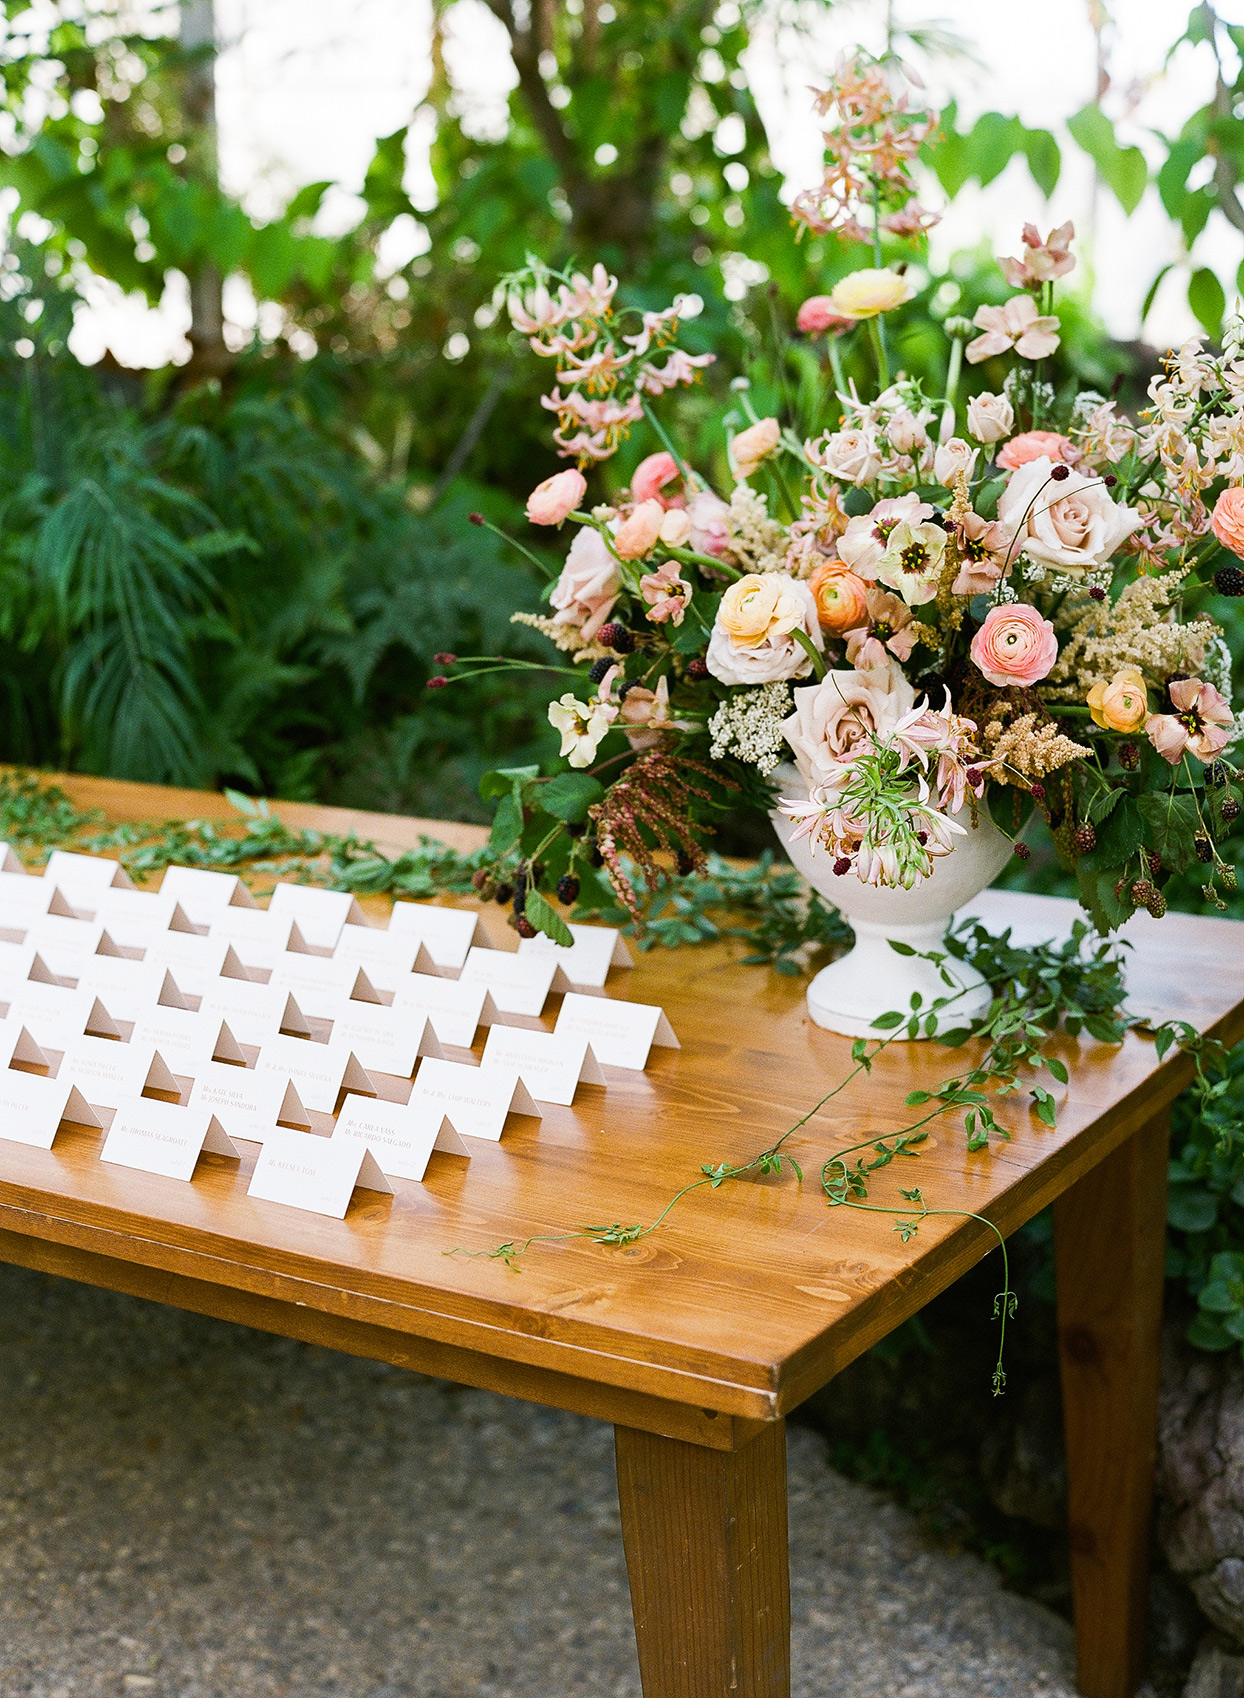 paper escort cards on wooden table with large pot of decorative flowers